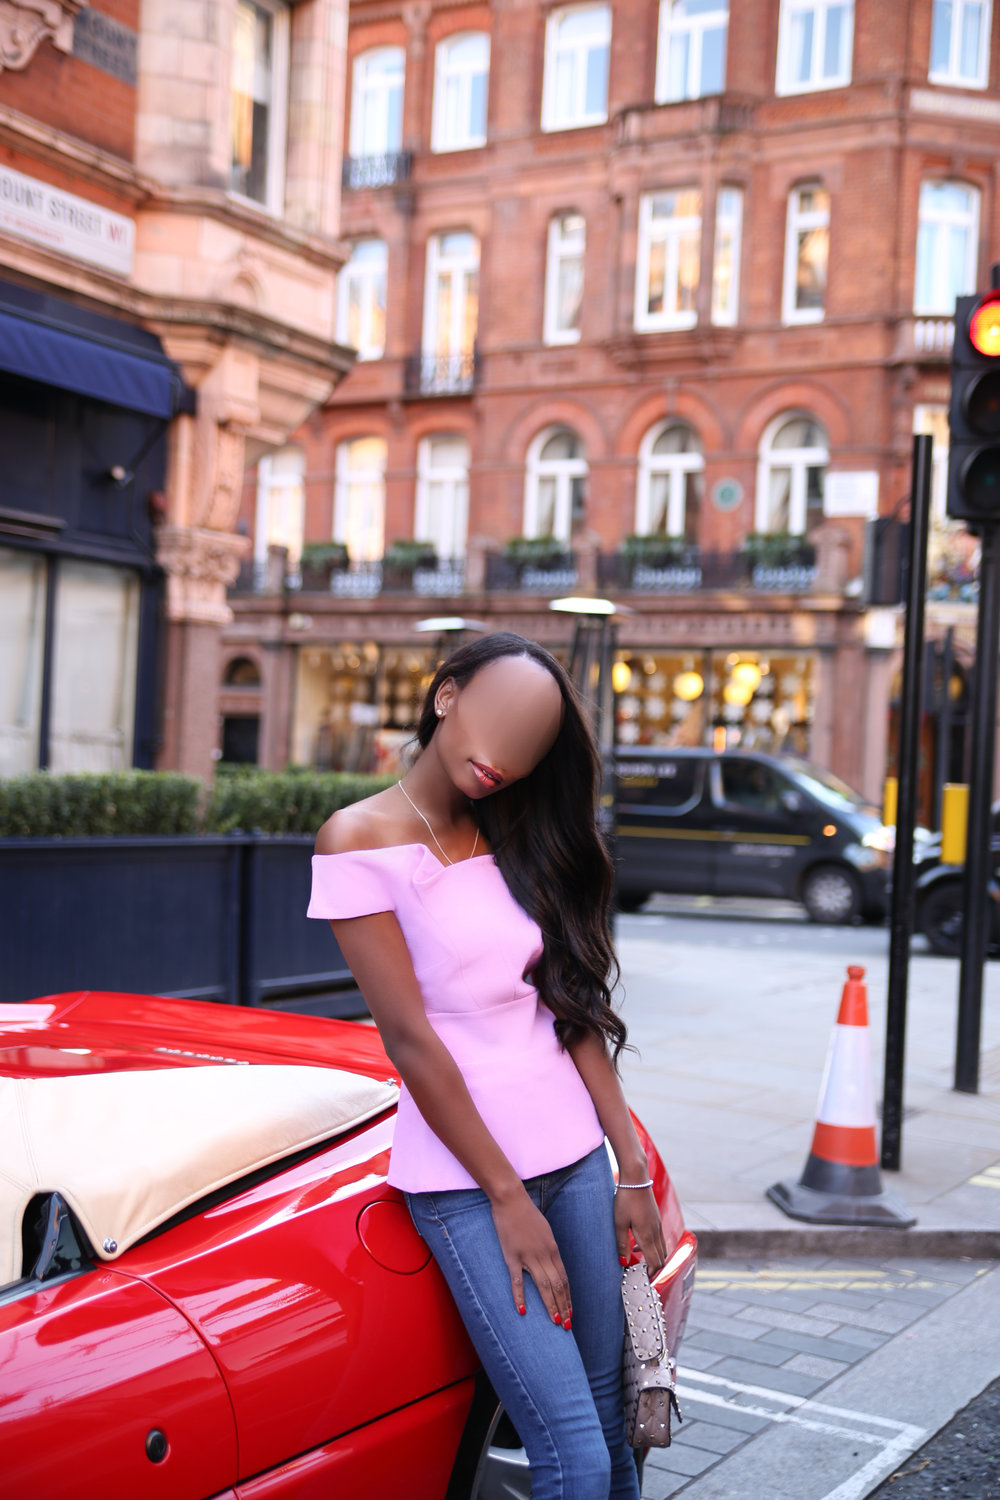 Details - Hair Black shoulder lengthEyes BrownHeight 5'4Age Early 20'sFigure Athletic modelesque physiqueEducation Current MBA studentHobbies Swimming, Skiing, Yoga & dancing.Interests Contemporary art, Ballet, Musical theatre & sportsFavourite Destination Shanghai, Monaco, St. Moritz & RomeFavourite Cuisine Japanese, Russian & French.Favourite Beverages Champagne & Chablis.